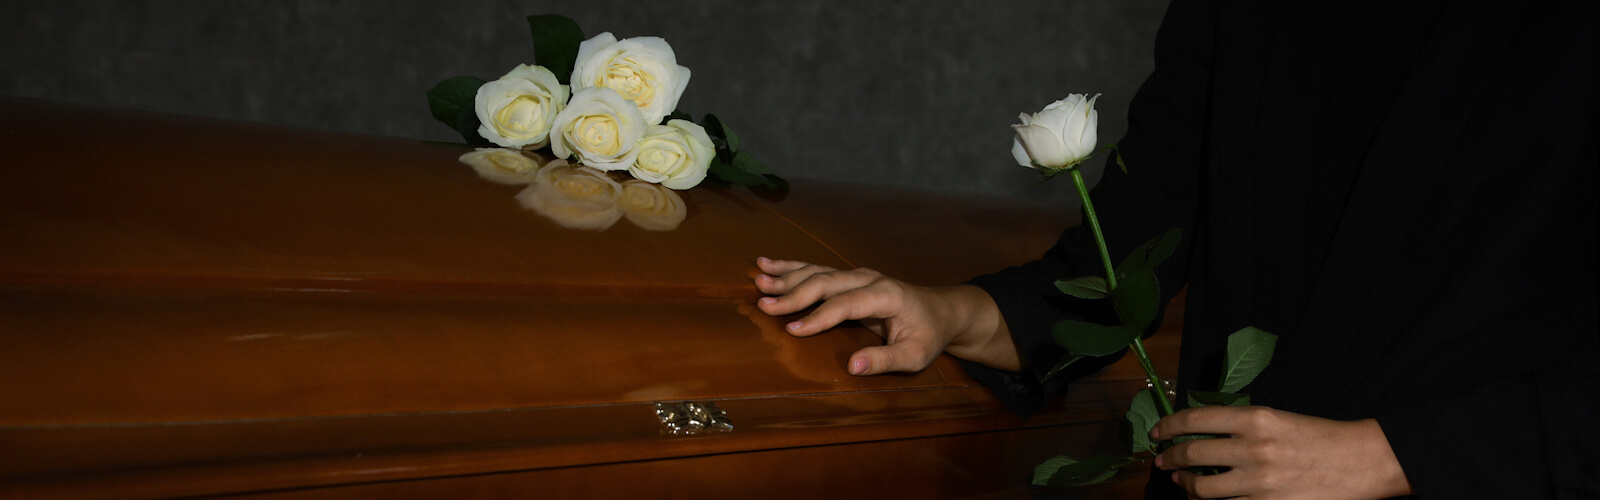 Young woman with white rose near casket in funeral home